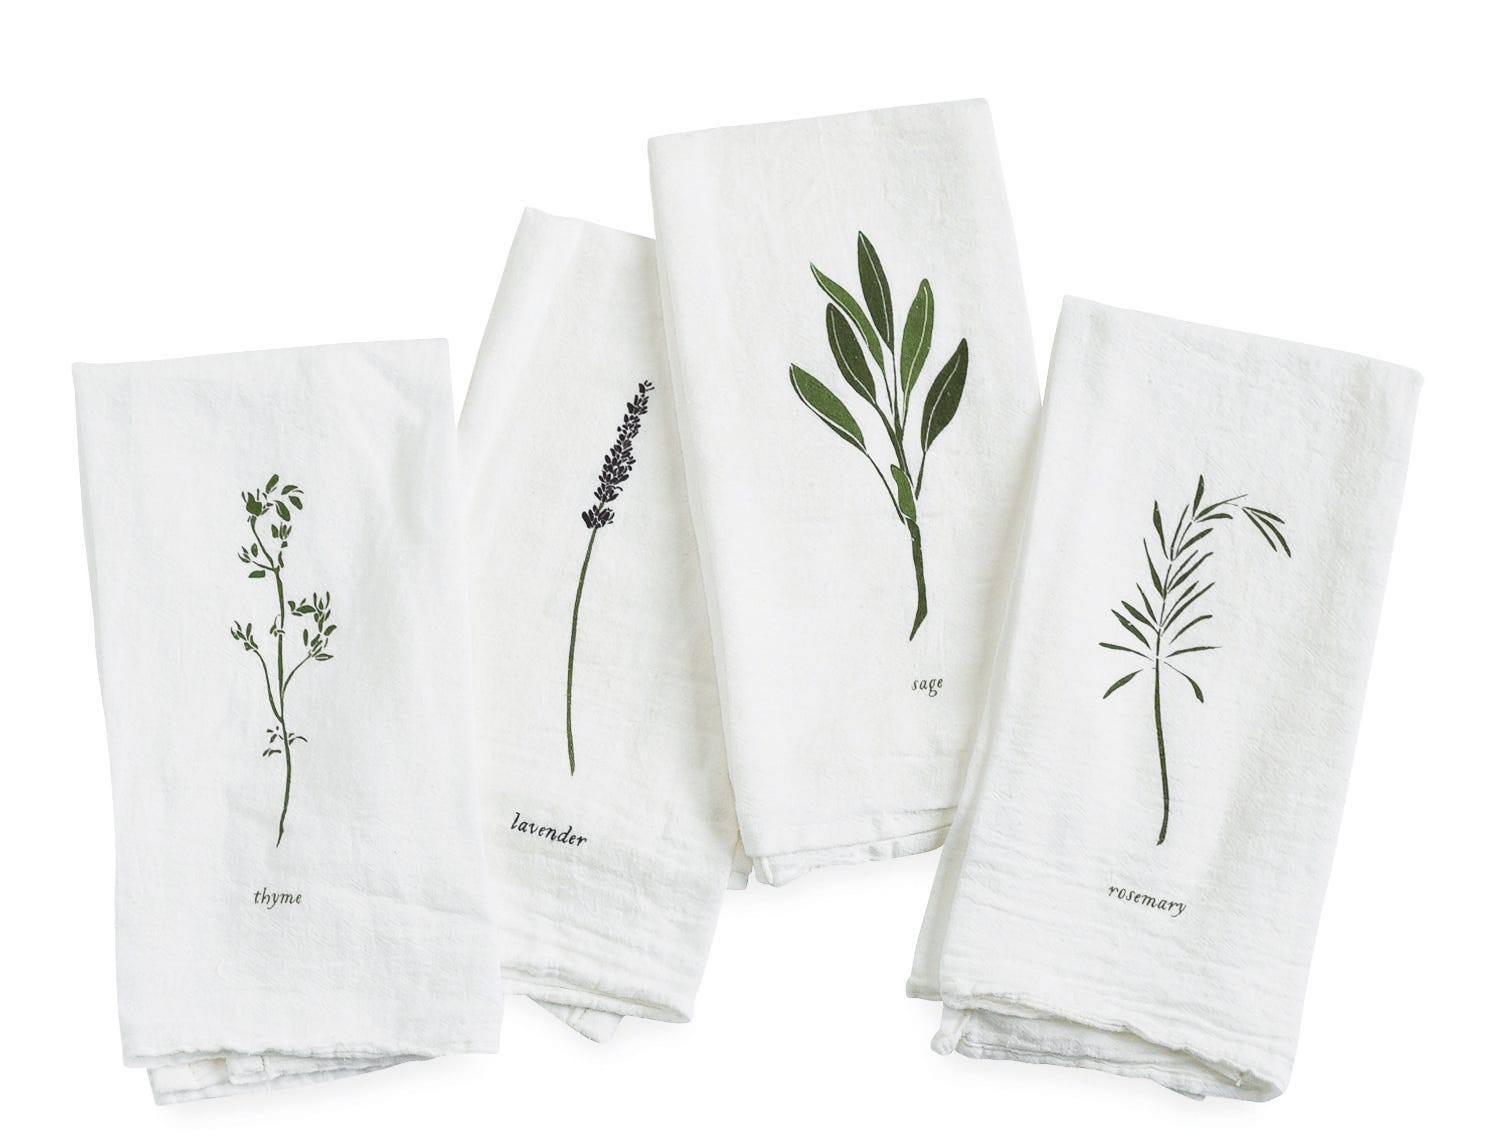 Looking for a gift for the foodie or gardener in the family? Berkley's June & December makes a fun Garden Herb Mixed Napkin Set for $38. Thyme, lavender, sage and rosemary are screenprinted on 100 percent flour sack cotton napkins.